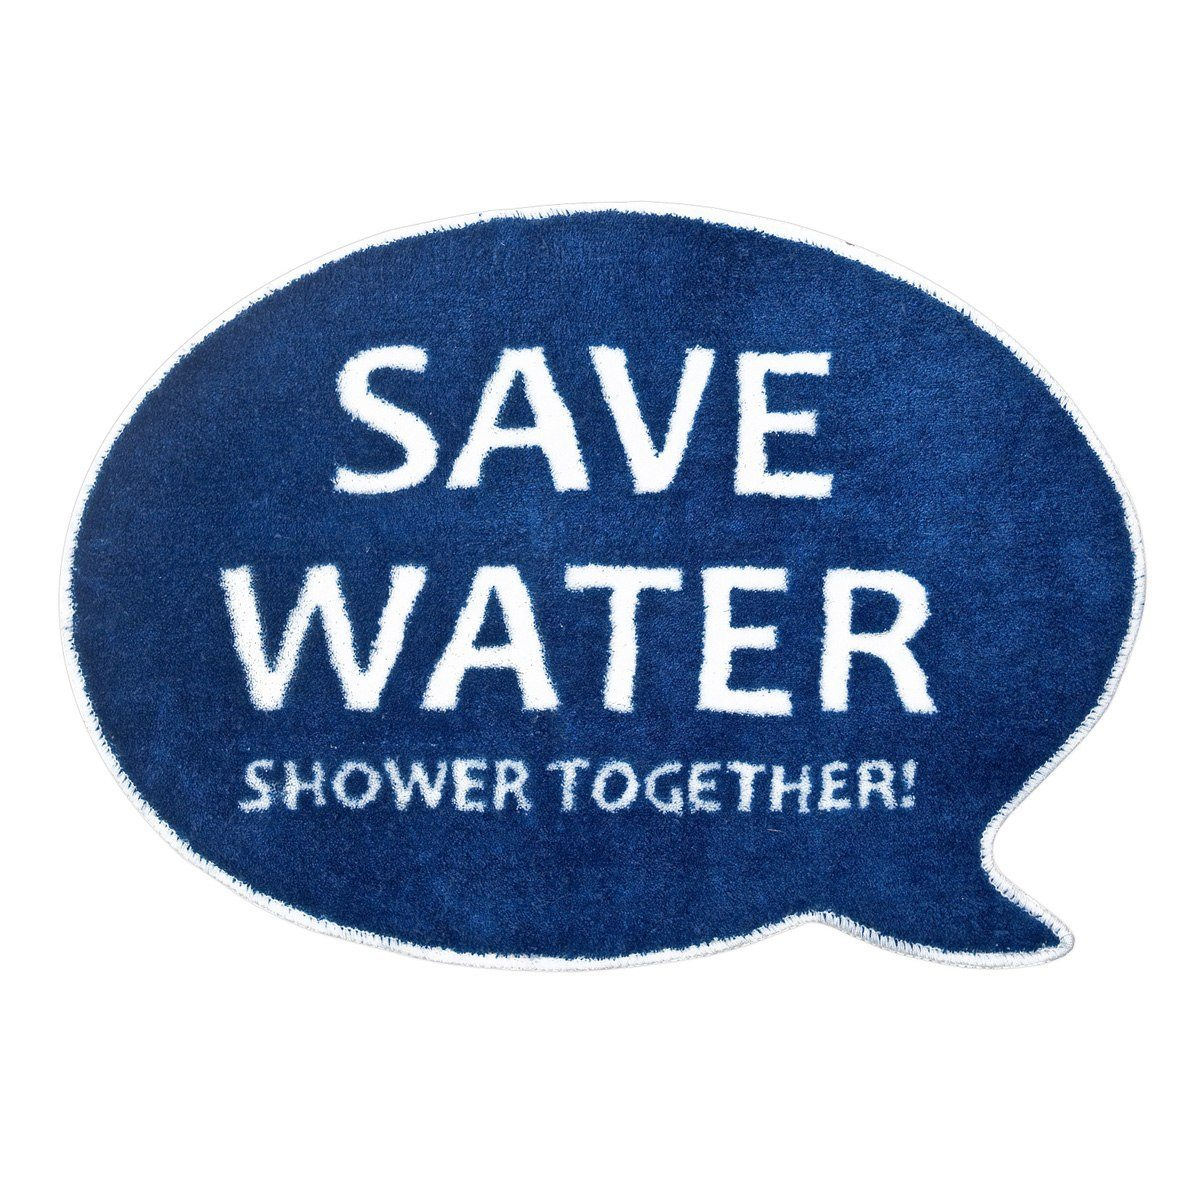 Duschmatta: Save Water, Shower Together!